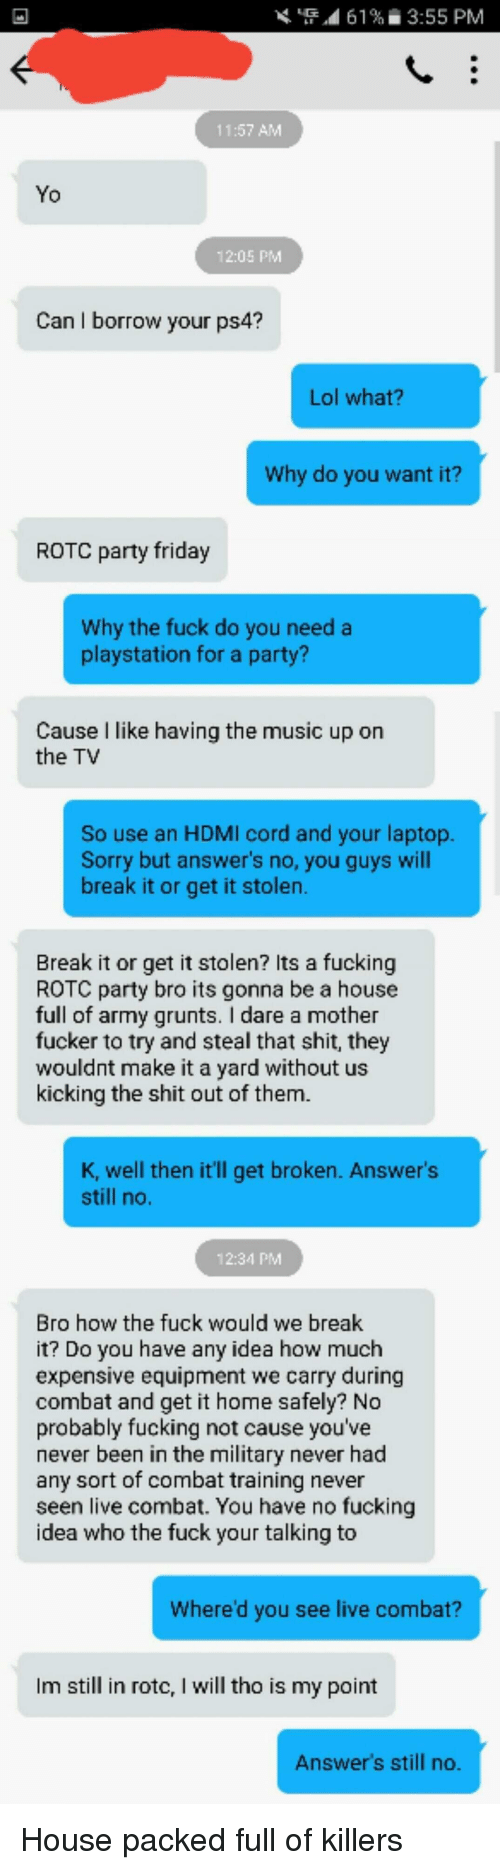 """combat training: """"4 61 %  3:55 PM  11:57 AMM  Yo  12:05 PM  Can I borrow your ps4?  Lol what?  Why do you want it?  ROTC party friday  Why the fuck do you need a  playstation for a party?  Cause l like having the music up on  the TV  So use an HDMI cord and your laptop.  Sorry but answer's no, you guys will  break it or get it stolen.  Break it or get it stolen? Its a fucking  ROTC party bro its gonna be a house  full of army grunts. I dare a mother  fucker to try and steal that shit, they  wouldnt make it a yard without us  kicking the shit out of them  K, well then it'll get broken. Answer's  still no.  12:34 PM  Bro how the fuck would we break  it? Do you have any idea how much  expensive equipment we carry during  combat and get it home safely? No  probably fucking not cause you've  never been in the military never had  any sort of combat training never  seen live combat. You have no fucking  idea who the fuck your talking to  Where'd you see live combat?  Im still in rotc, I will tho is my point  Answer's still no."""